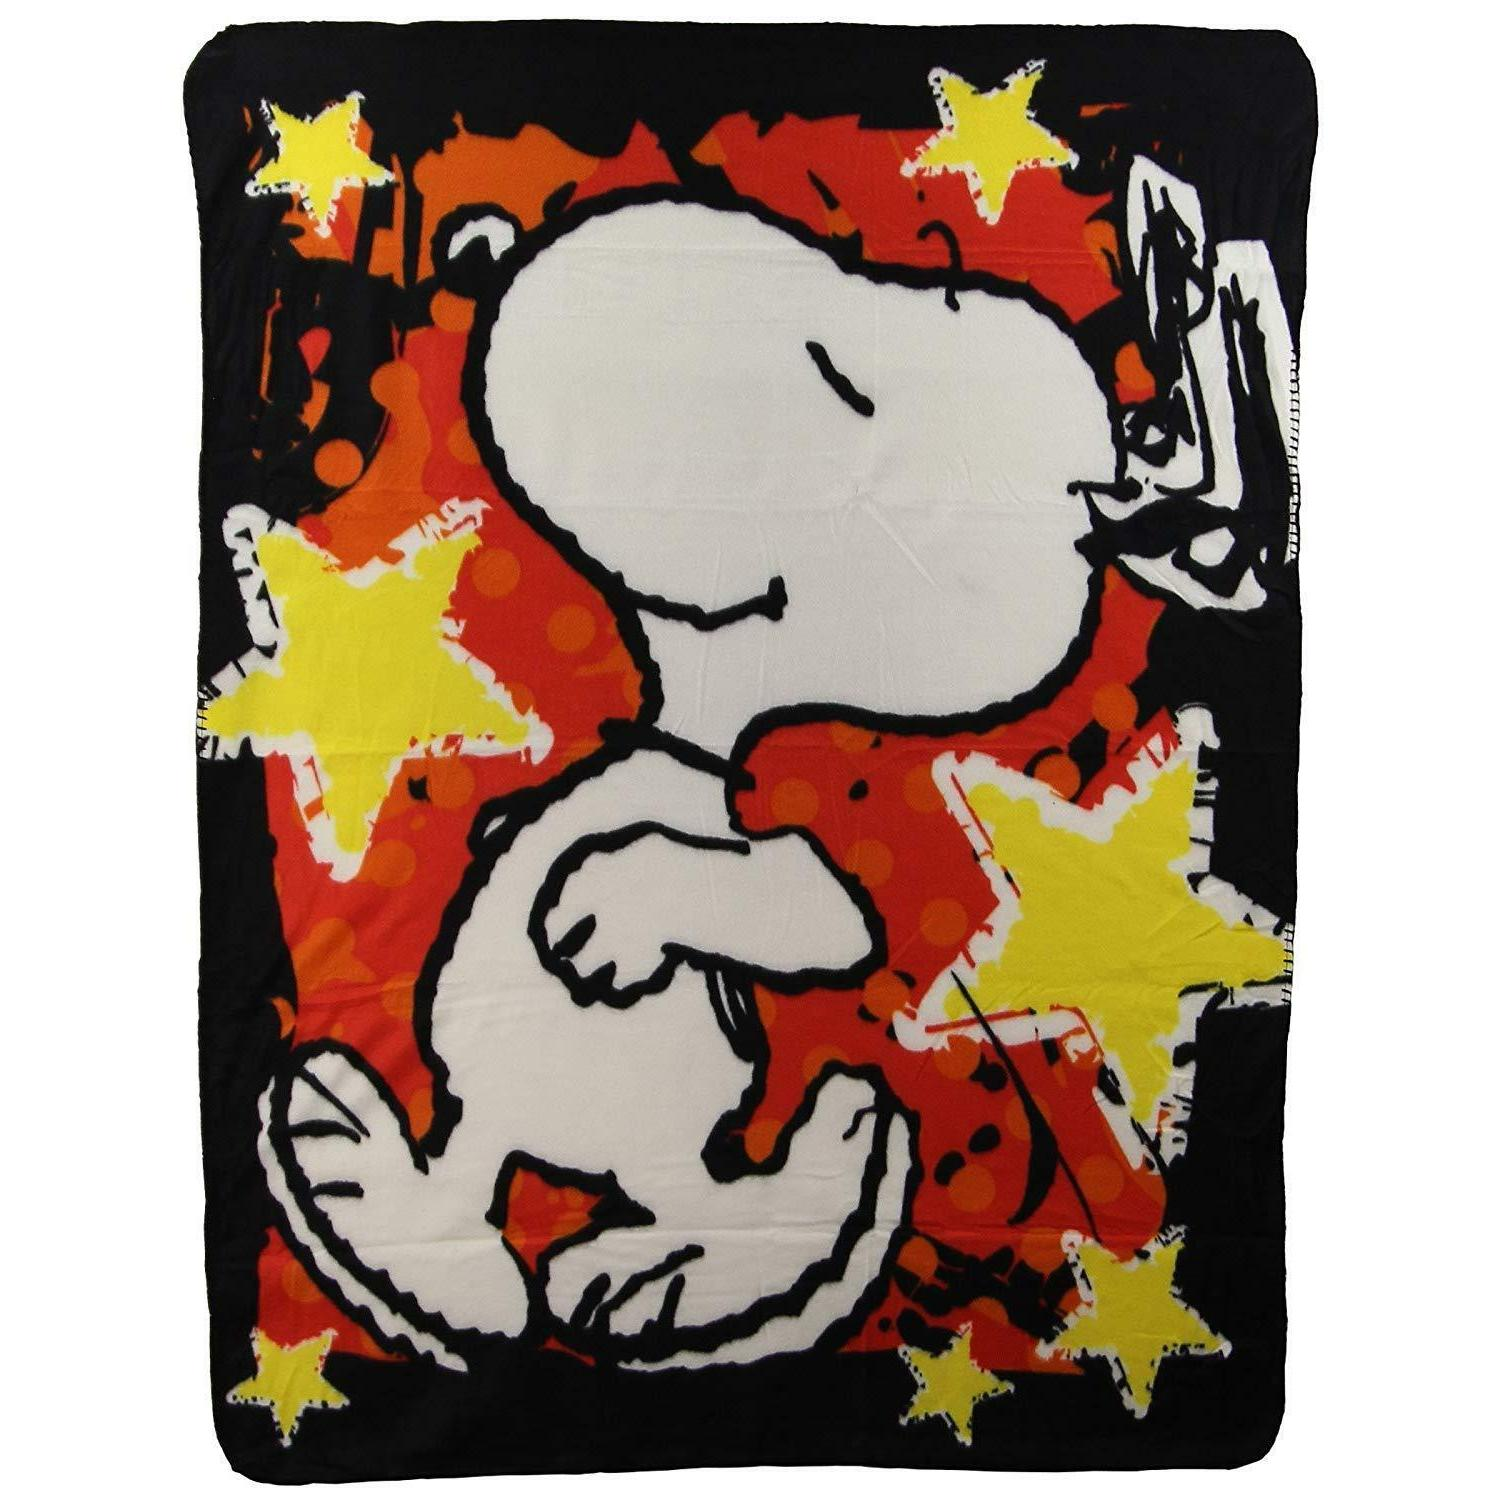 peanuts snoopy star treatment stars red gold